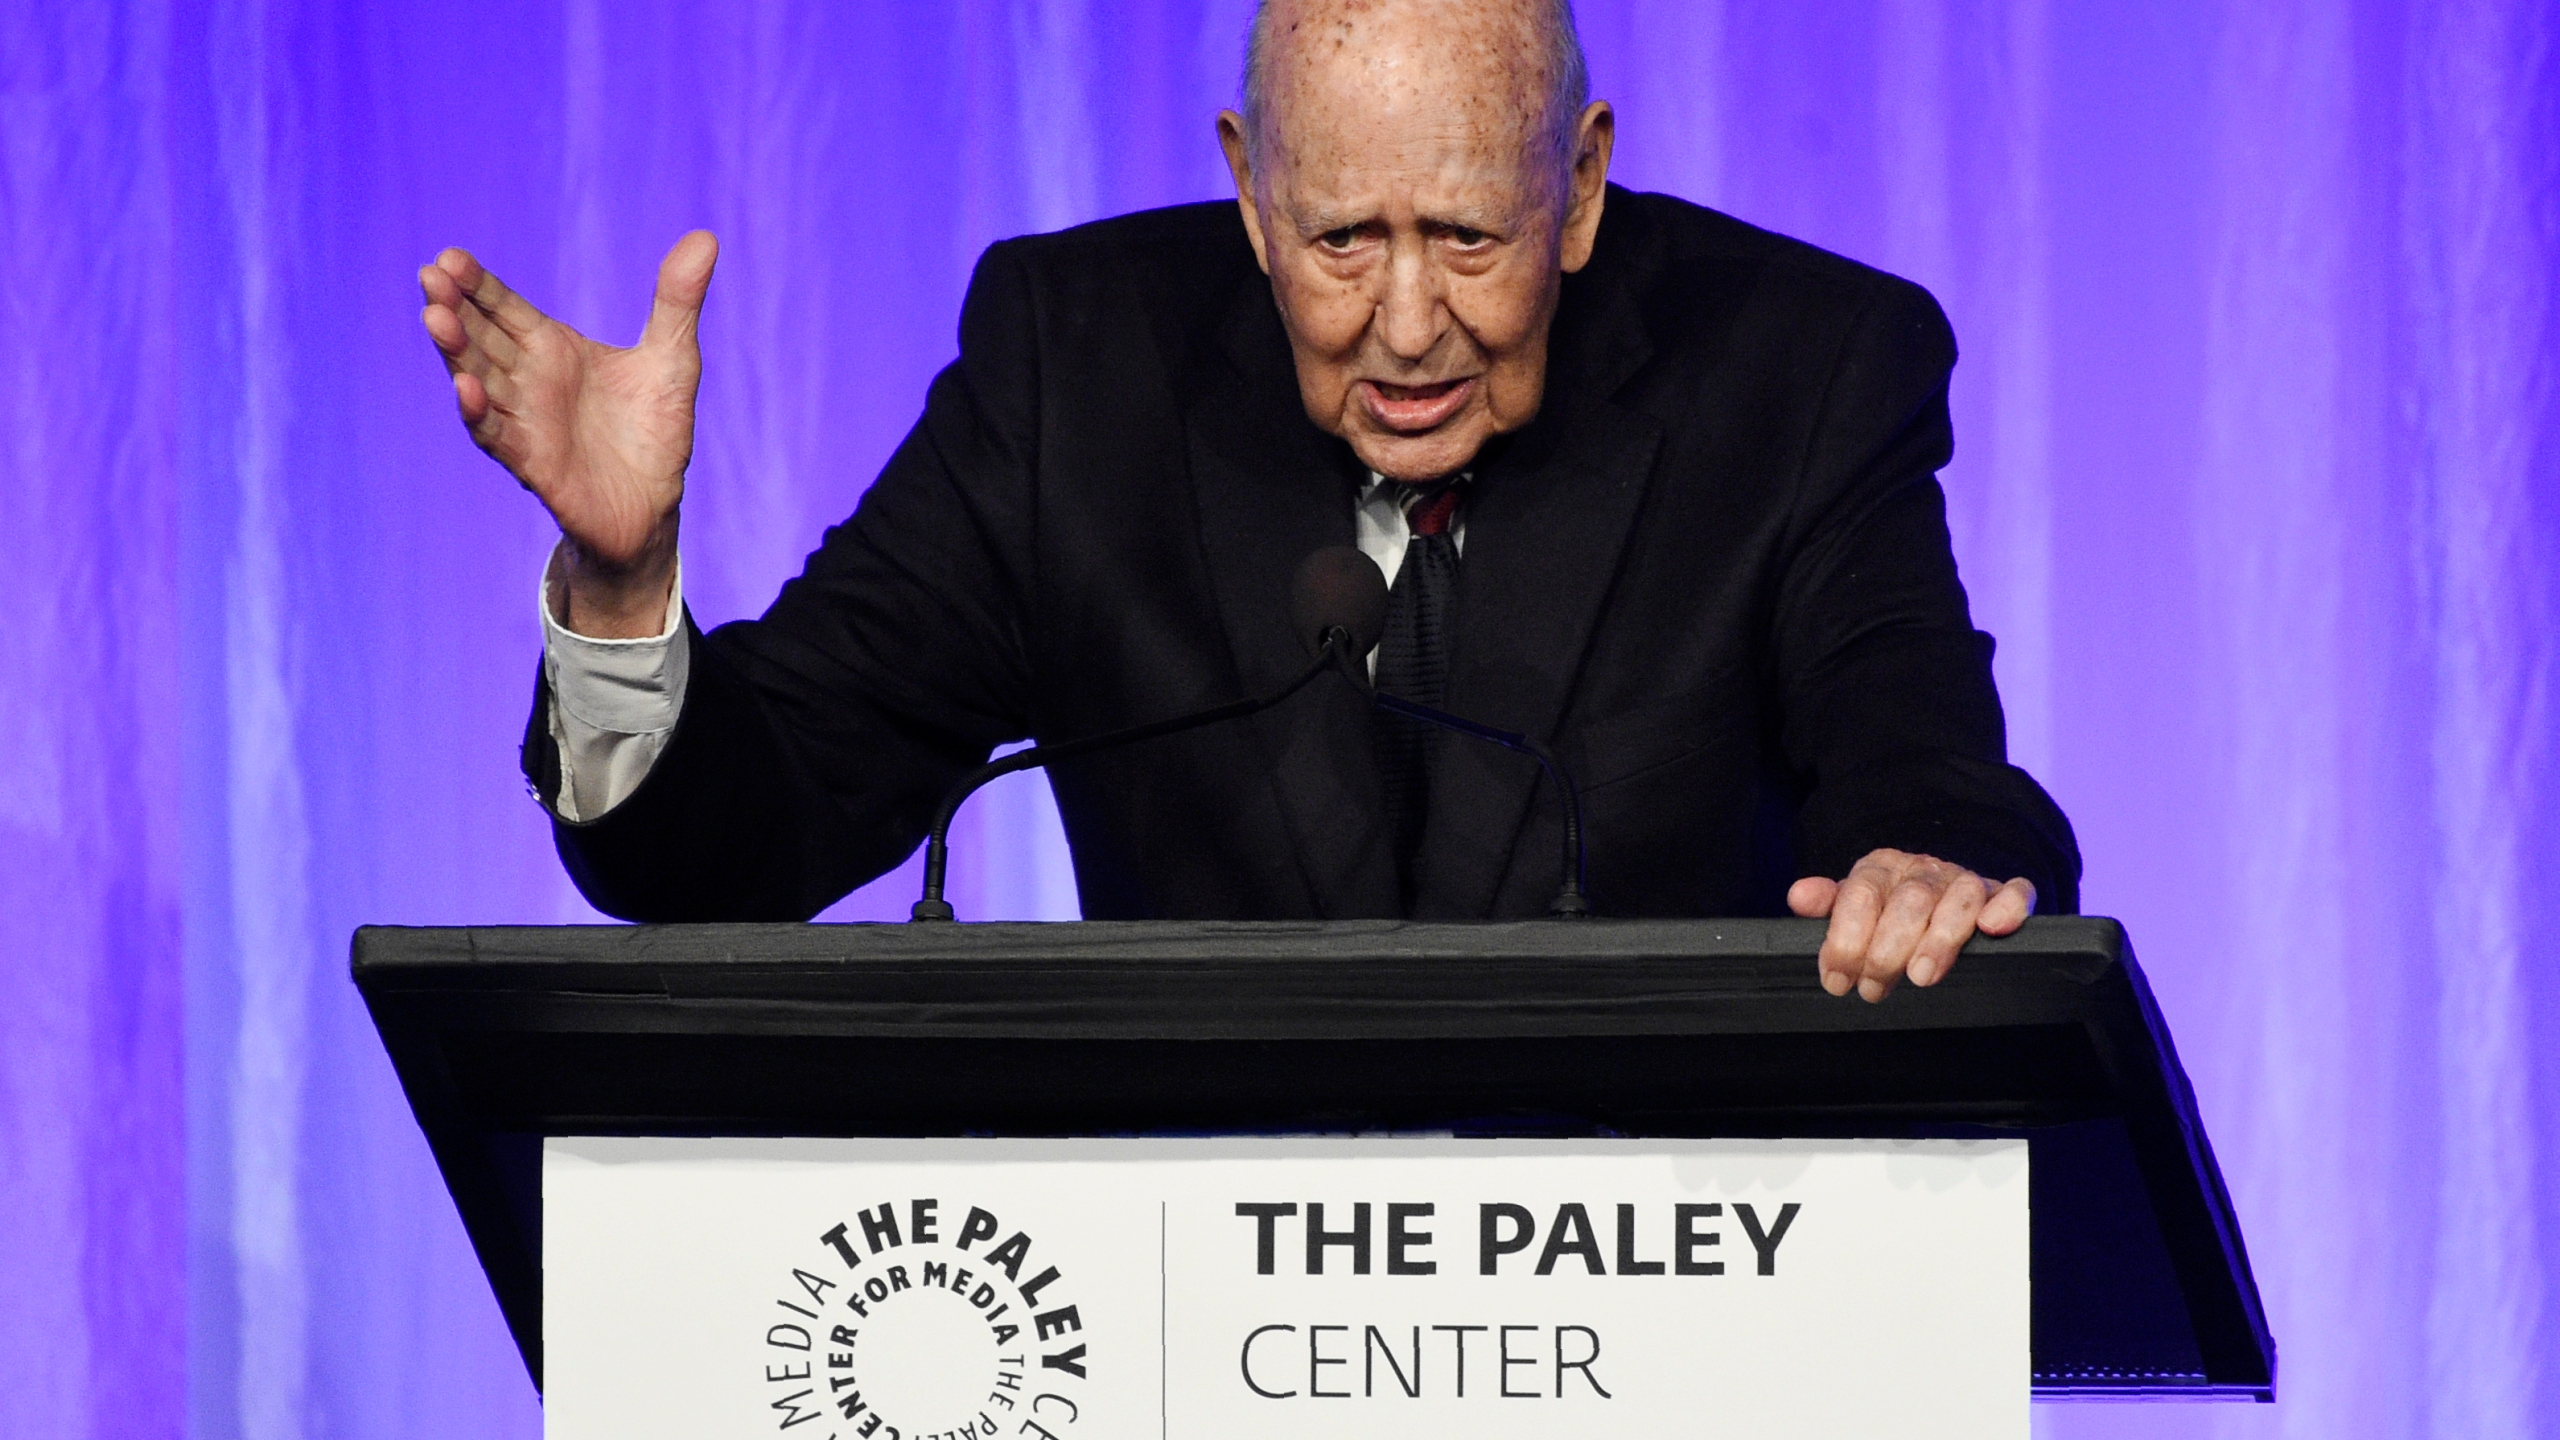 """Honoree Carl Reiner addresses the audience at """"The Paley Honors: A Special Tribute to Television's Comedy Legends"""" at the Beverly Wilshire Hotel, Thursday, Nov. 21, 2019, in Beverly Hills, Calif. (Photo by Chris Pizzello/Invision/AP)"""